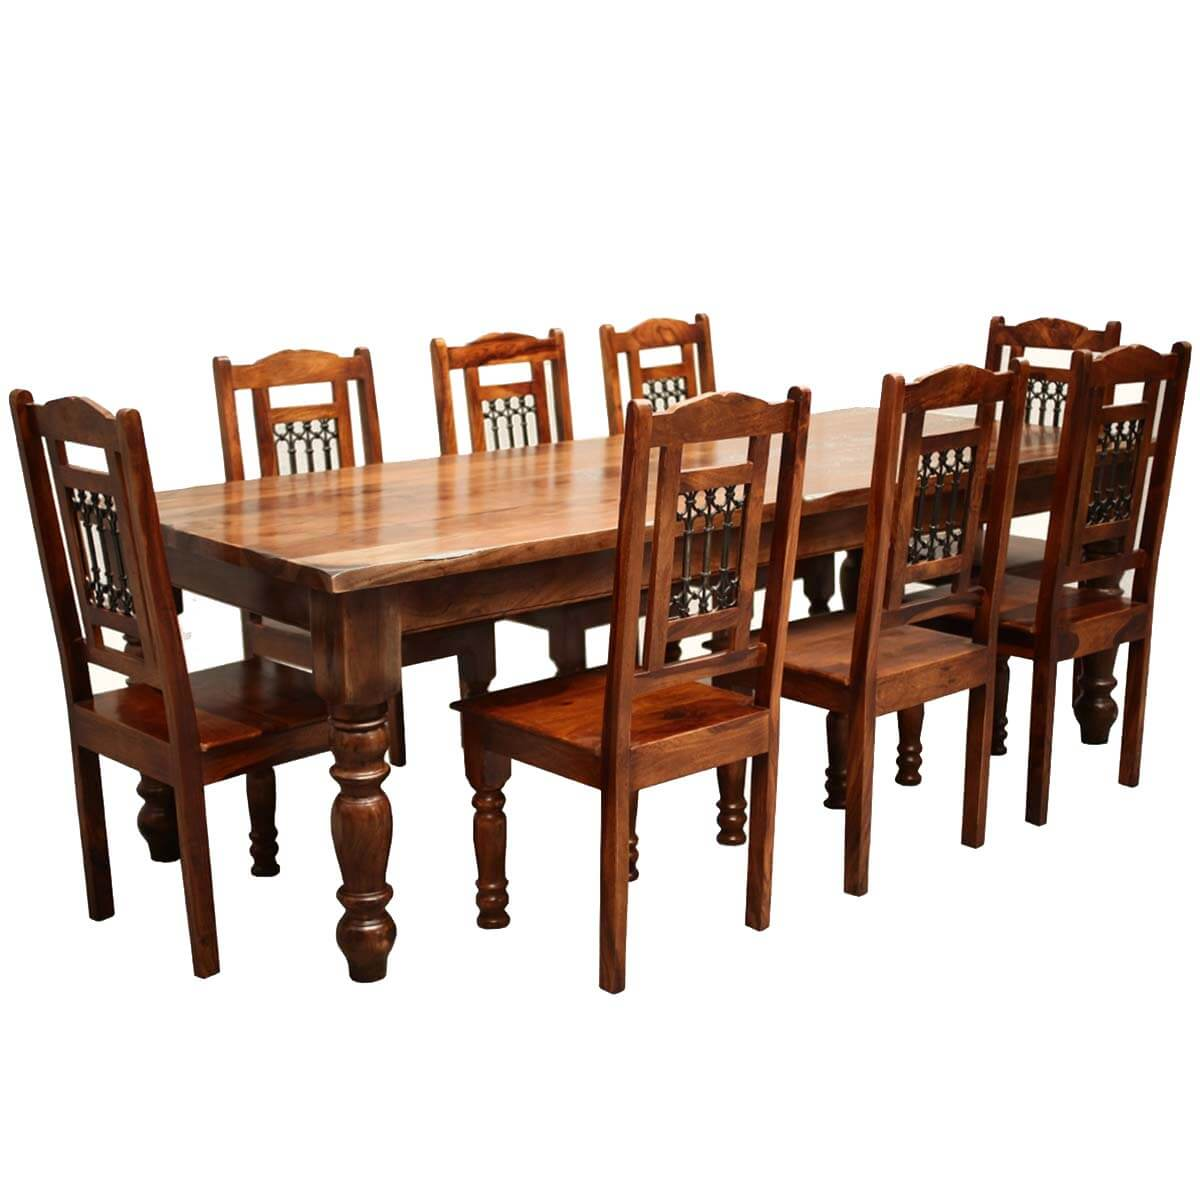 Rustic furniture solid wood large dining table 8 chair set for Rustic dining table and chairs